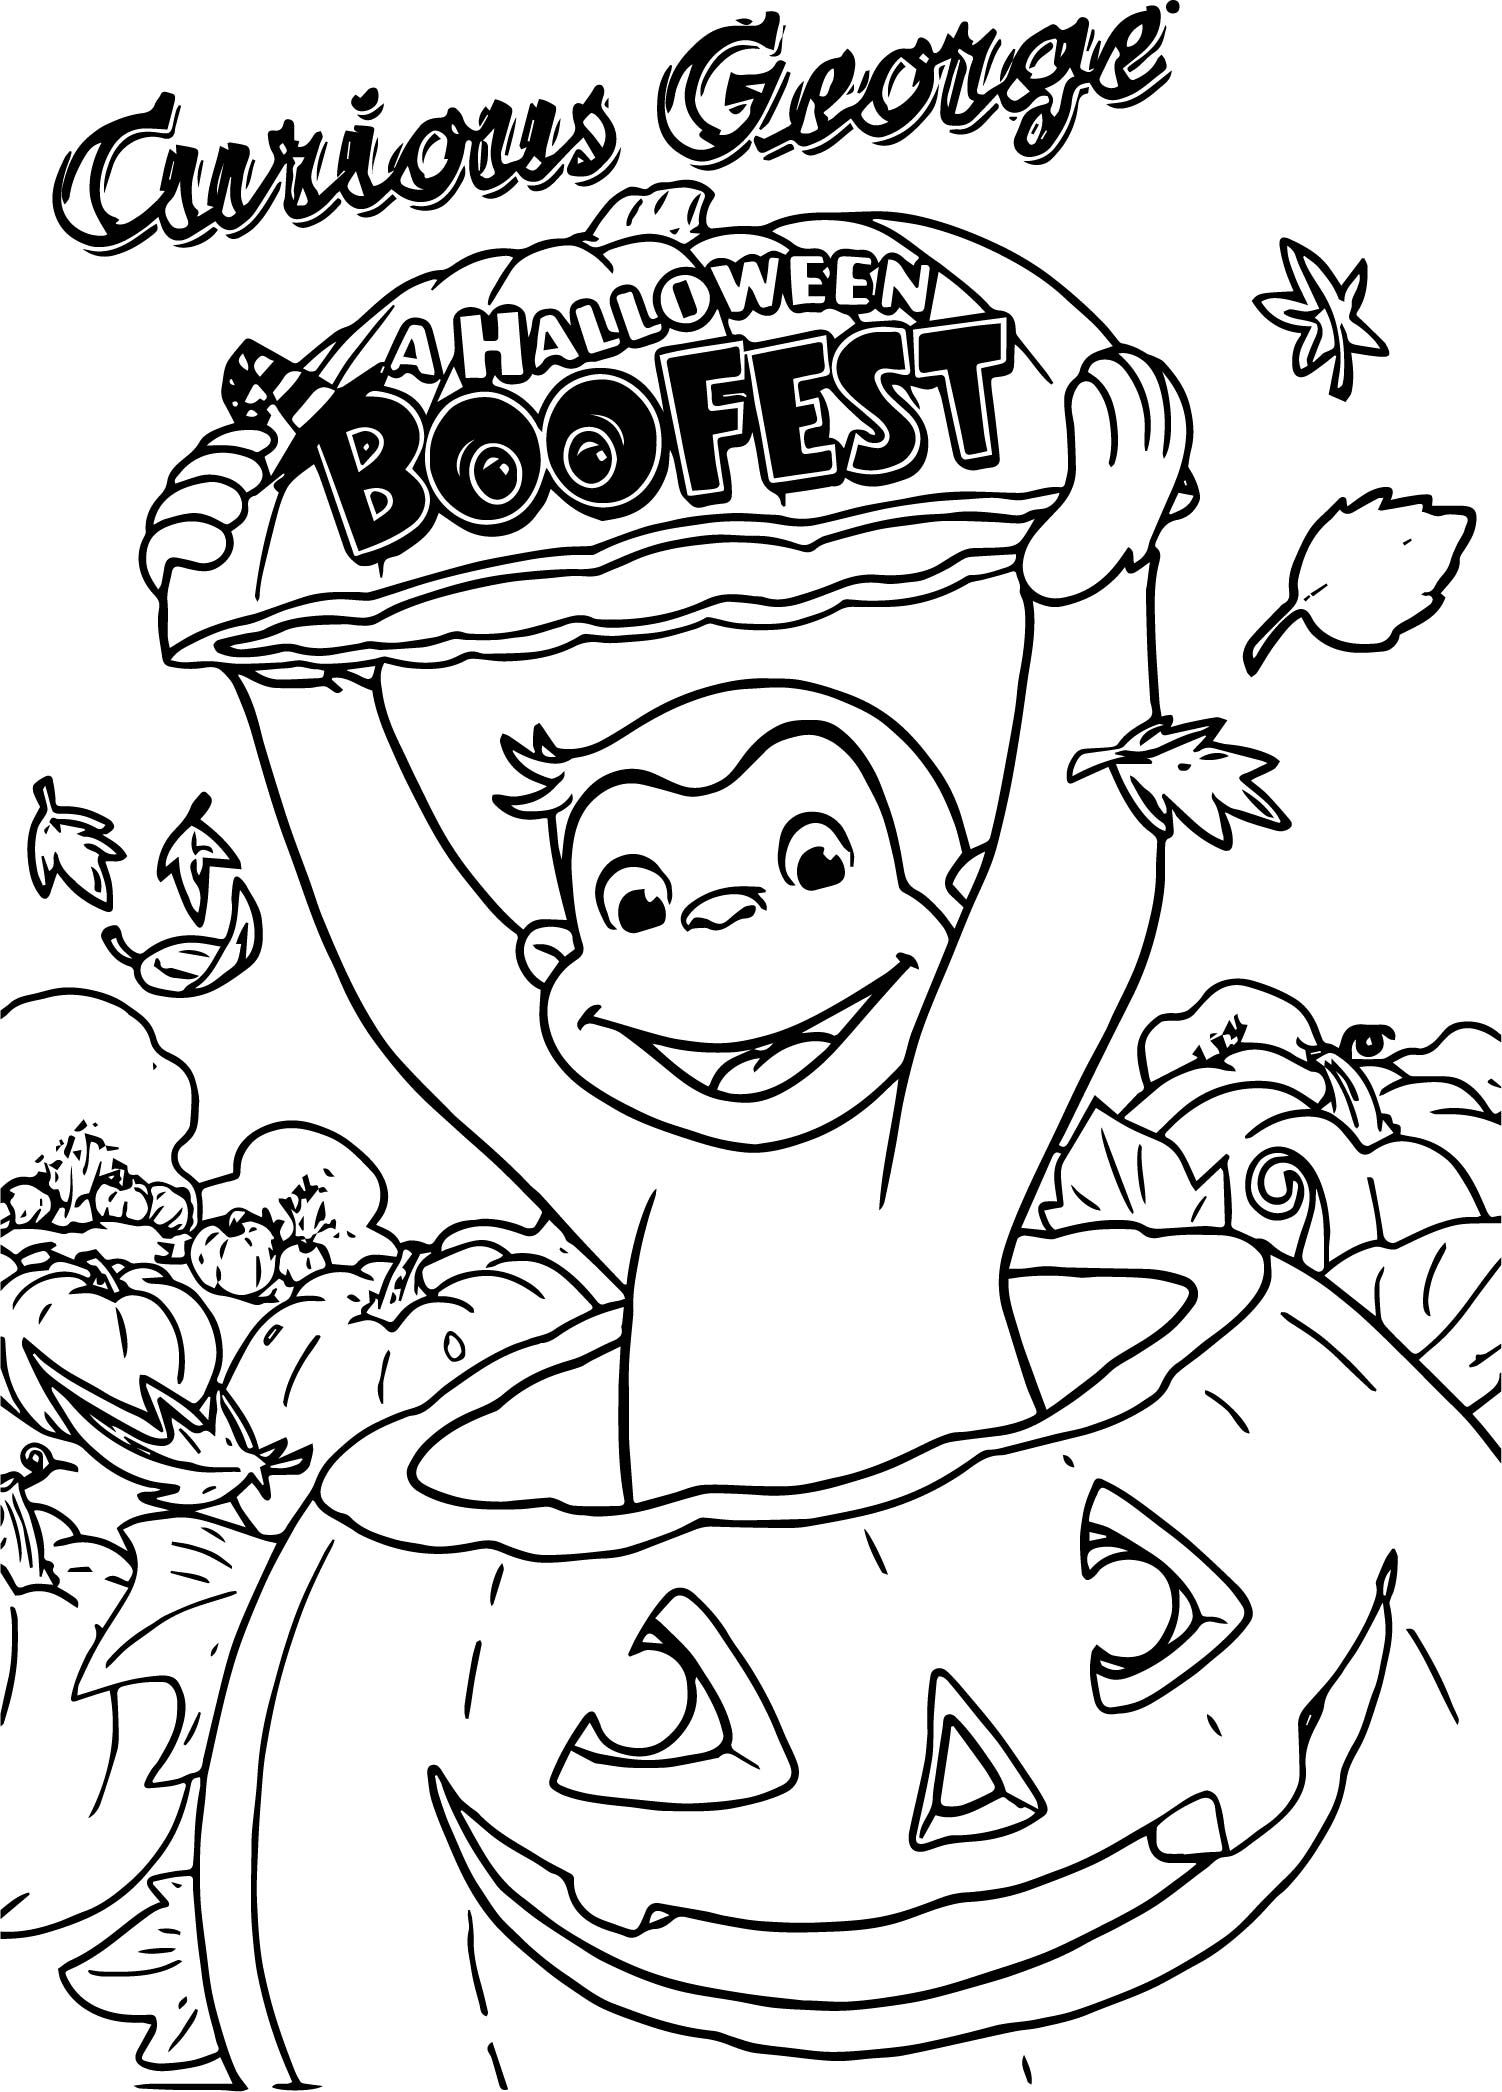 Awesome Curious George A Halloween Boofest Coloring Page Curious